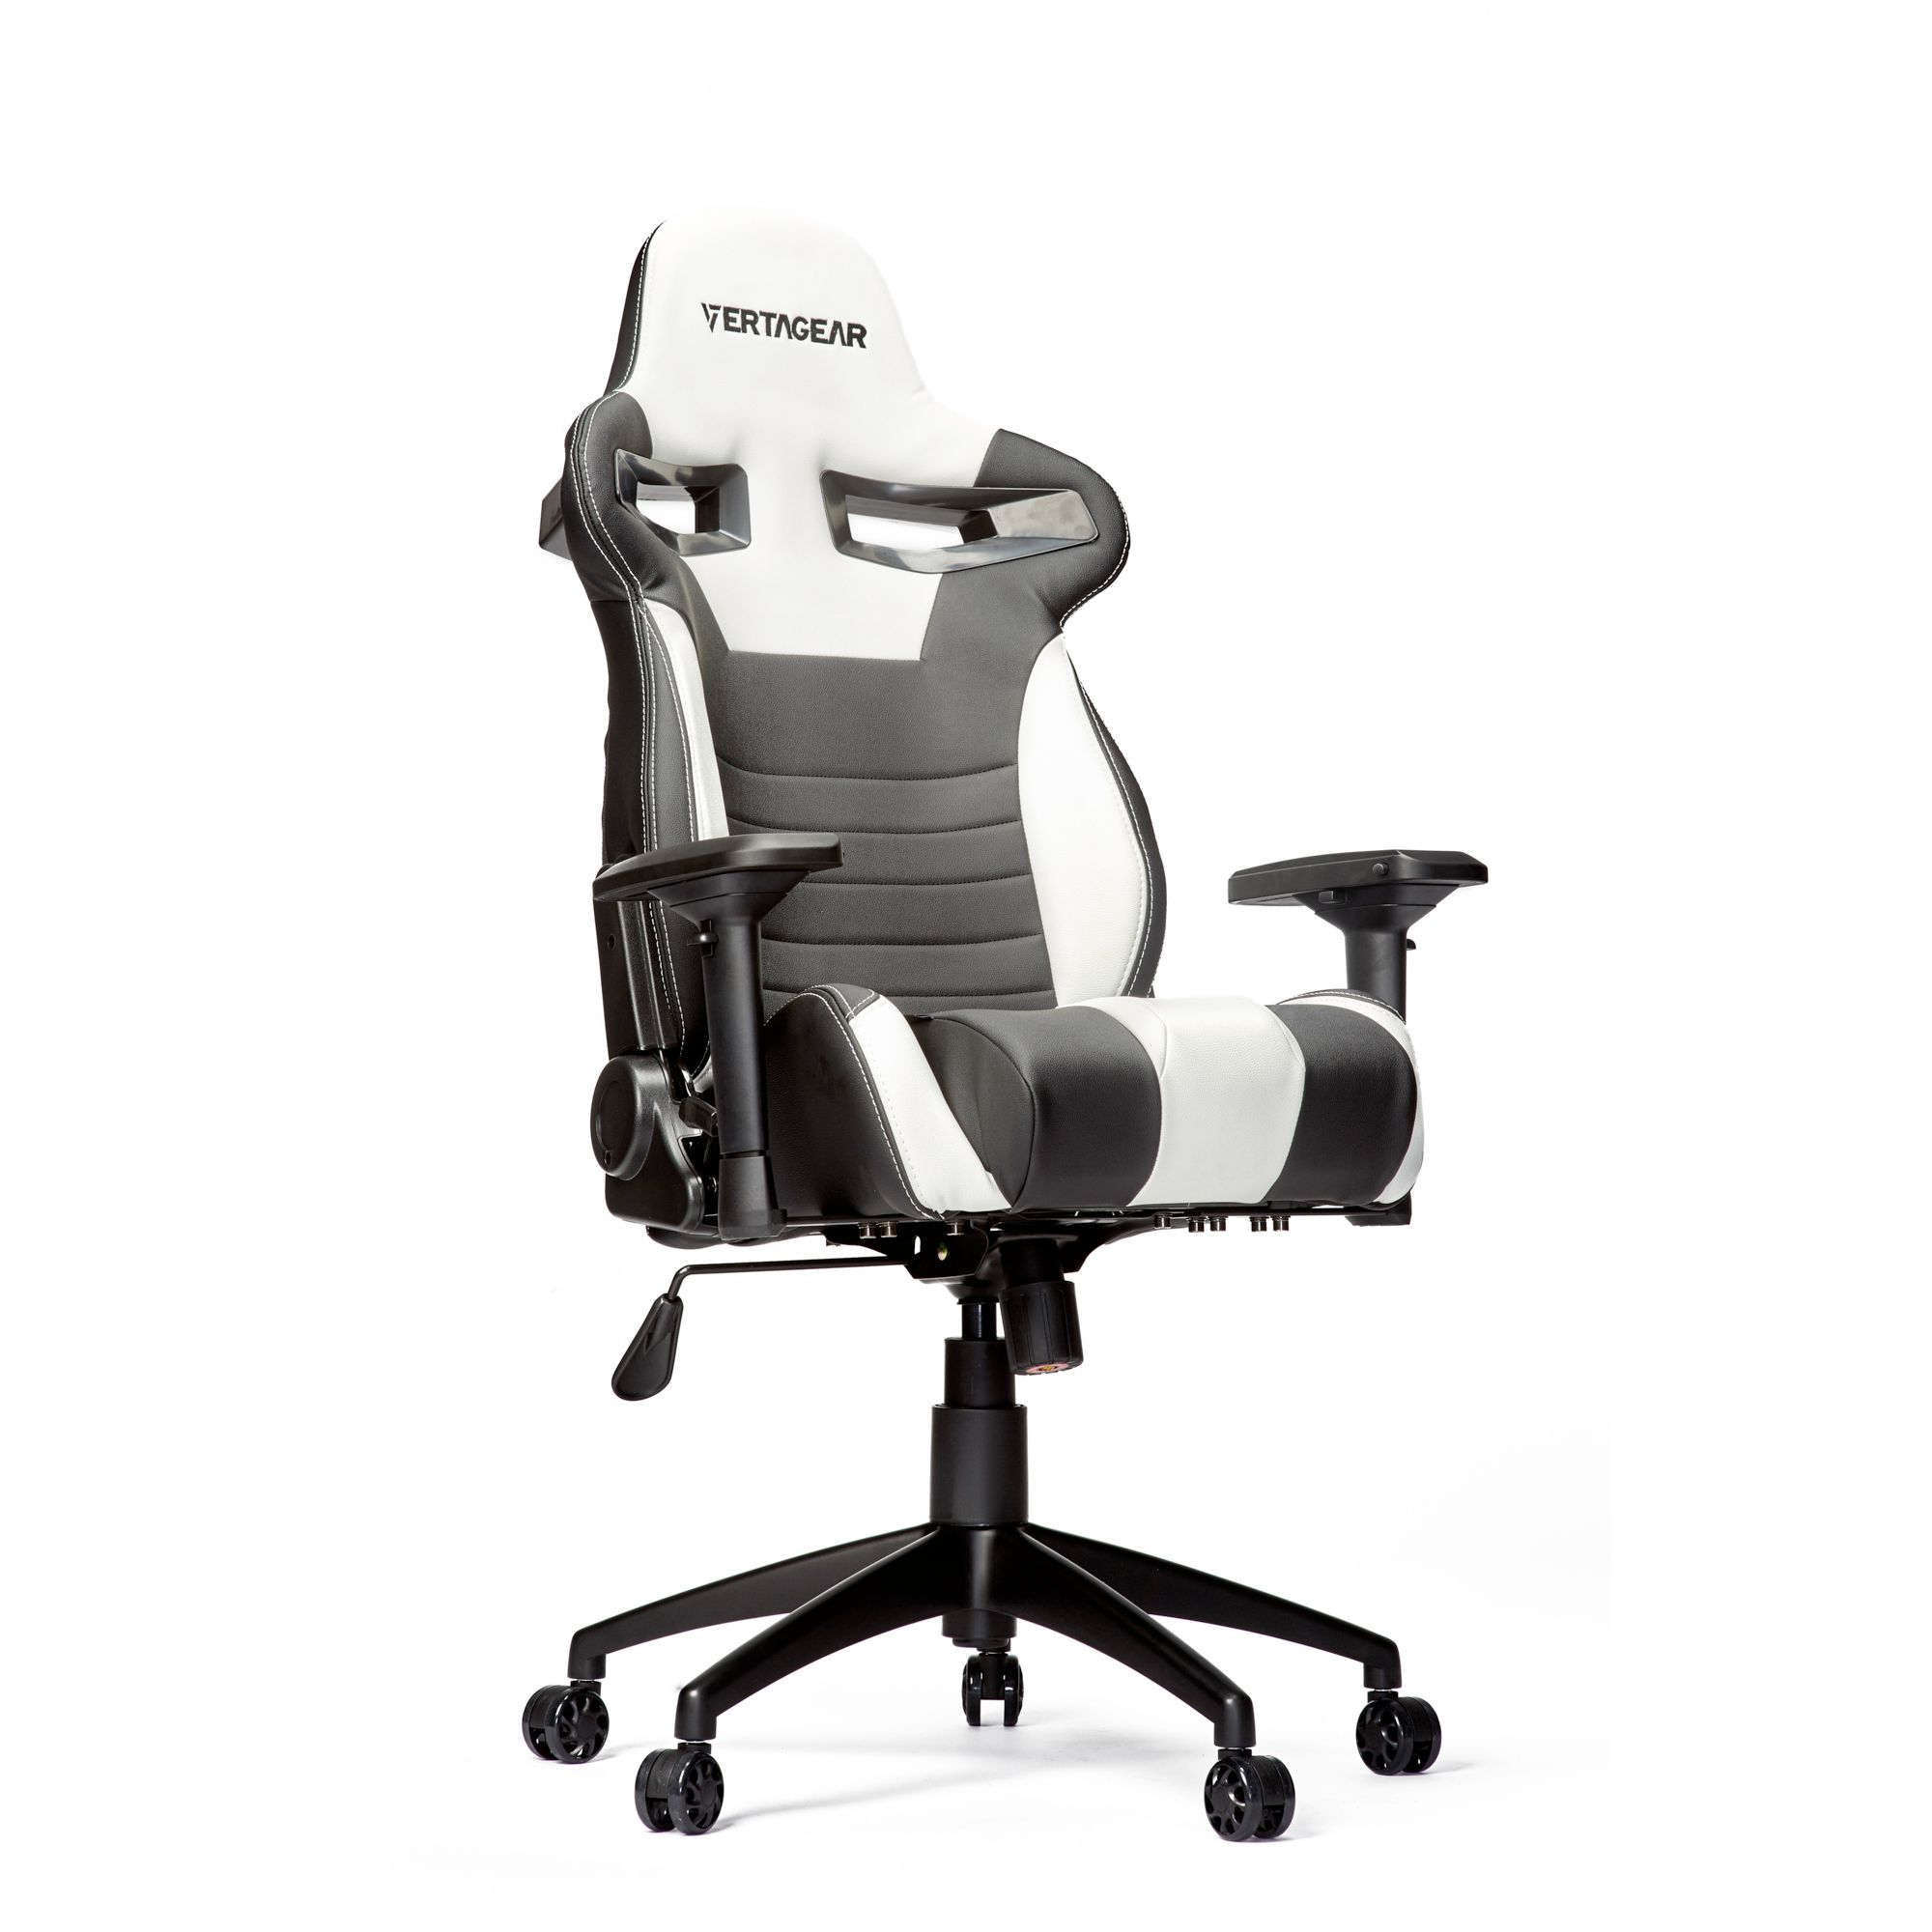 VERTAGEAR RACING SERIES S-LINE SL4000 REV. 2 GAMING CHAIR BLACK/WHITE EDITION VG-SL4000_WT